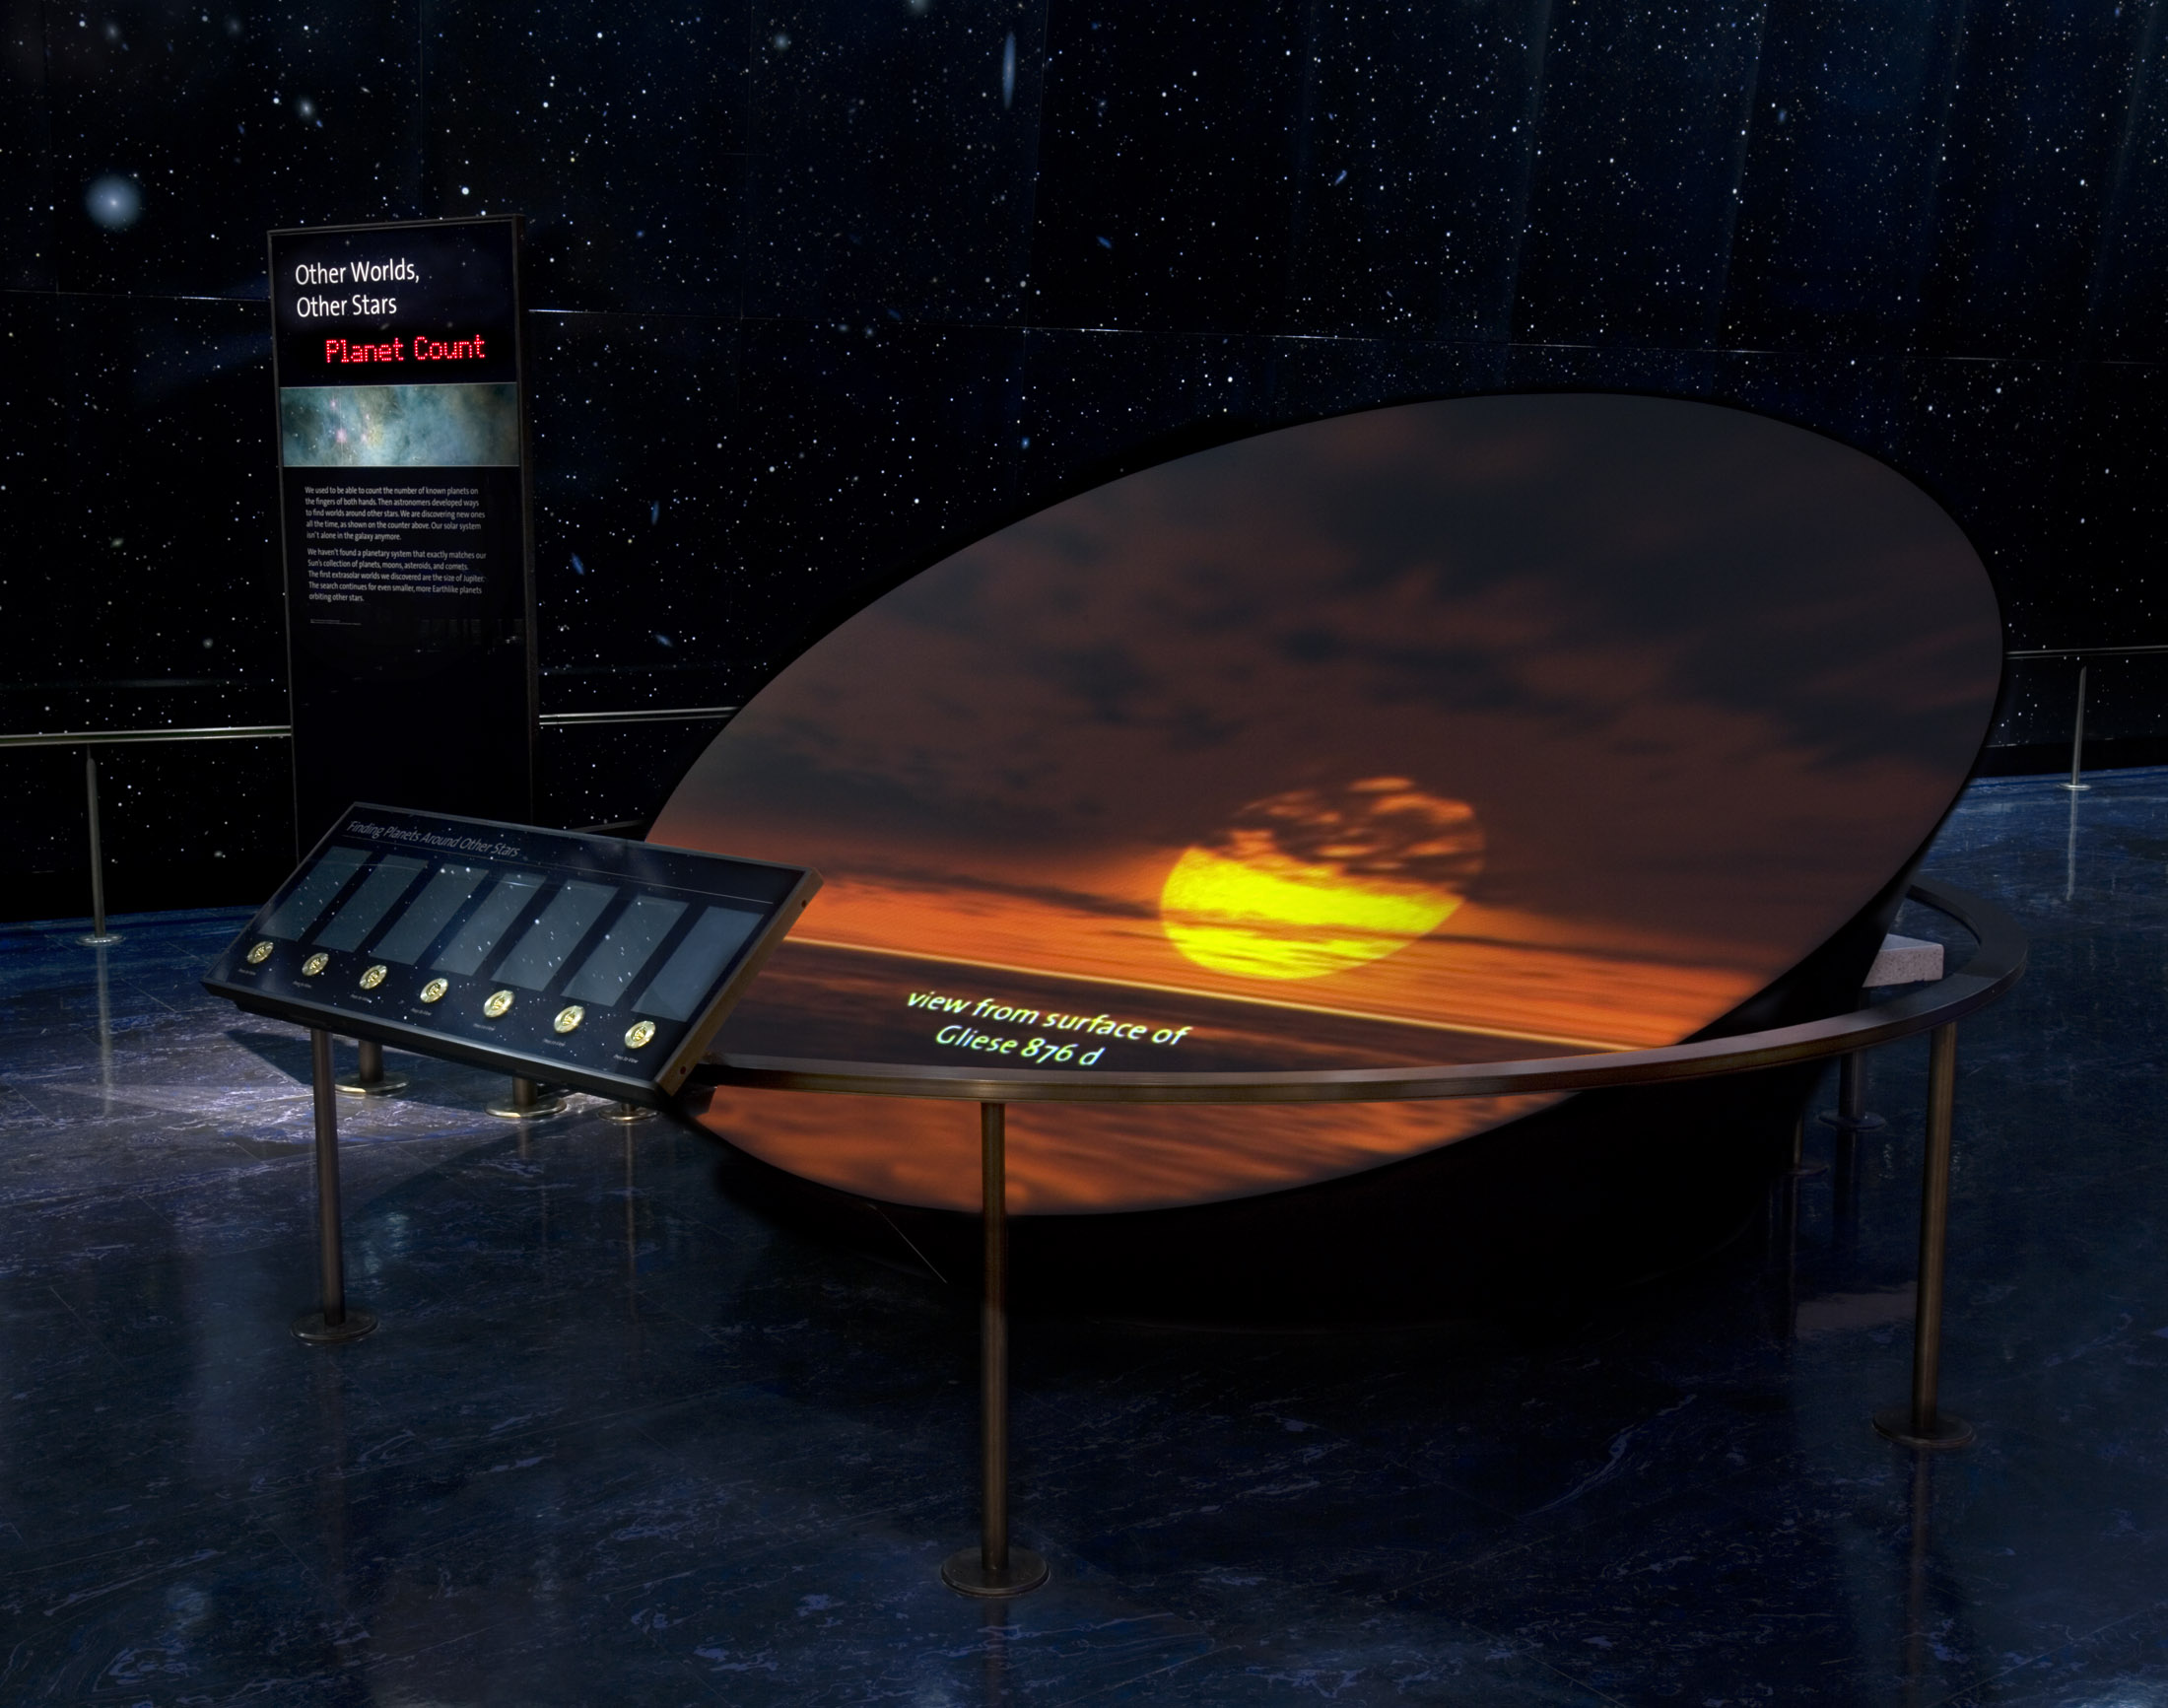 Project image 9 for Permanent Exhibits, Griffith Observatory